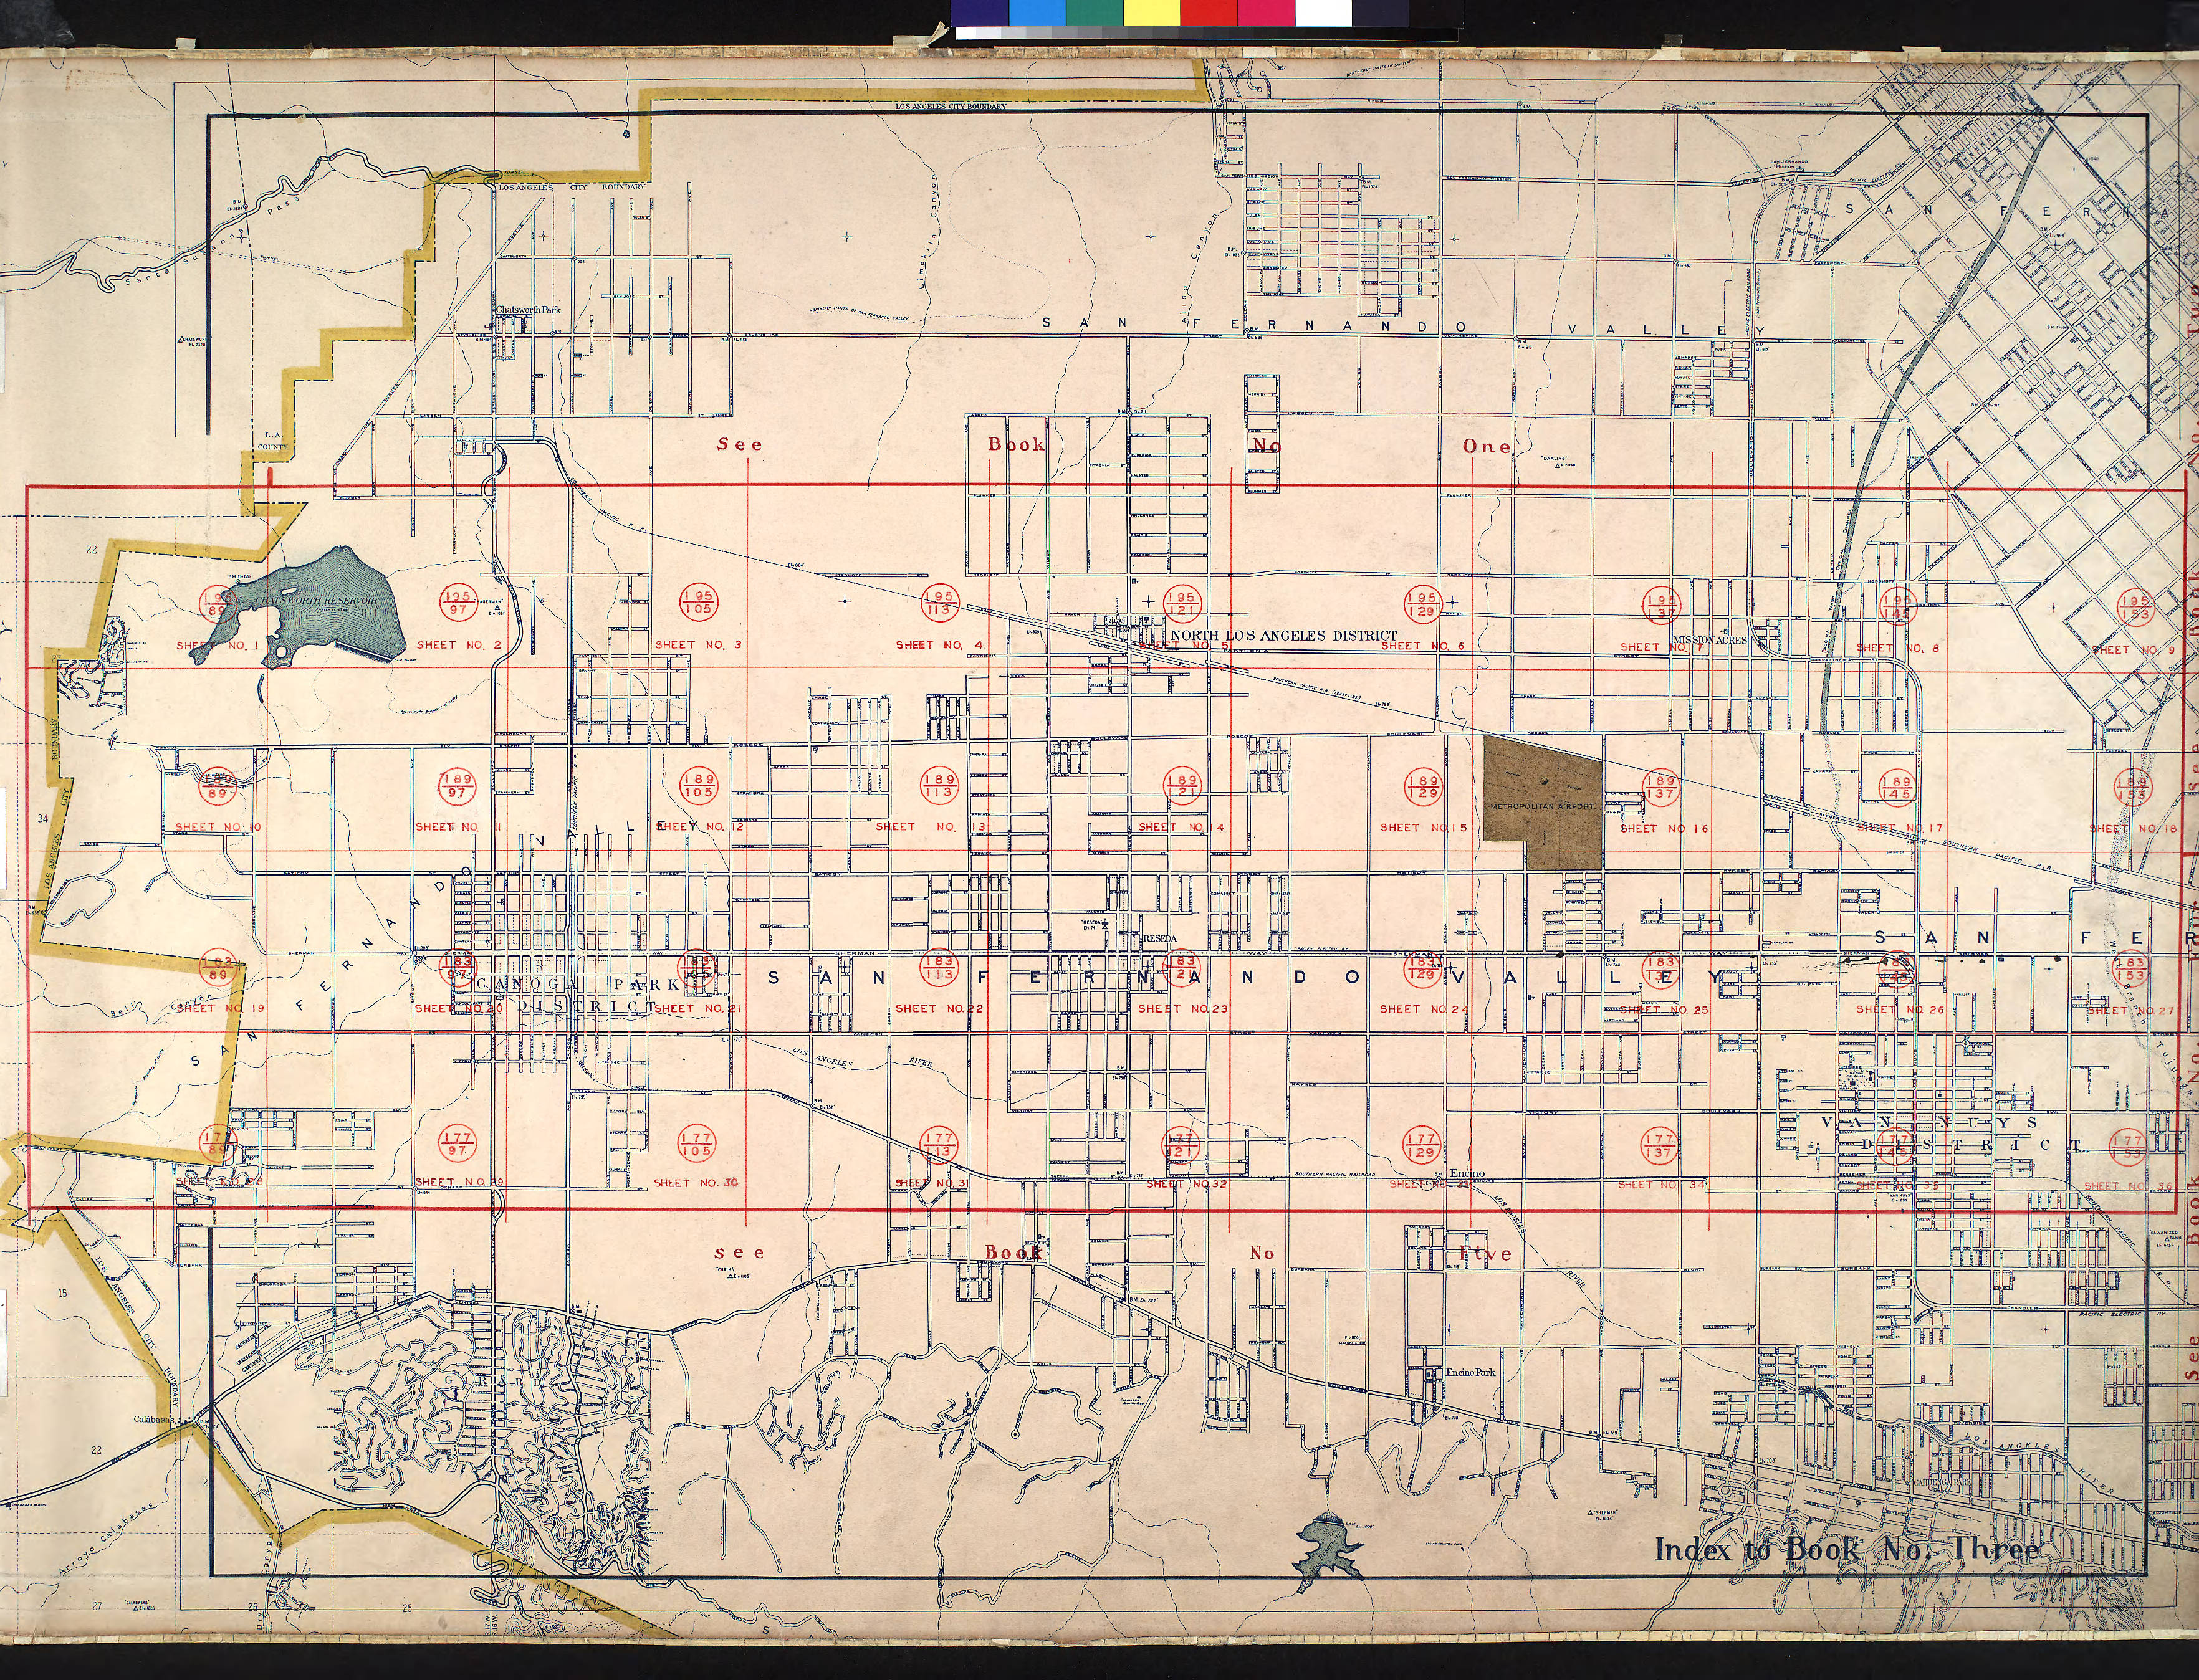 FileWPA Land Use Survey Map For The City Of Los Angeles Book - Los angeles map districts